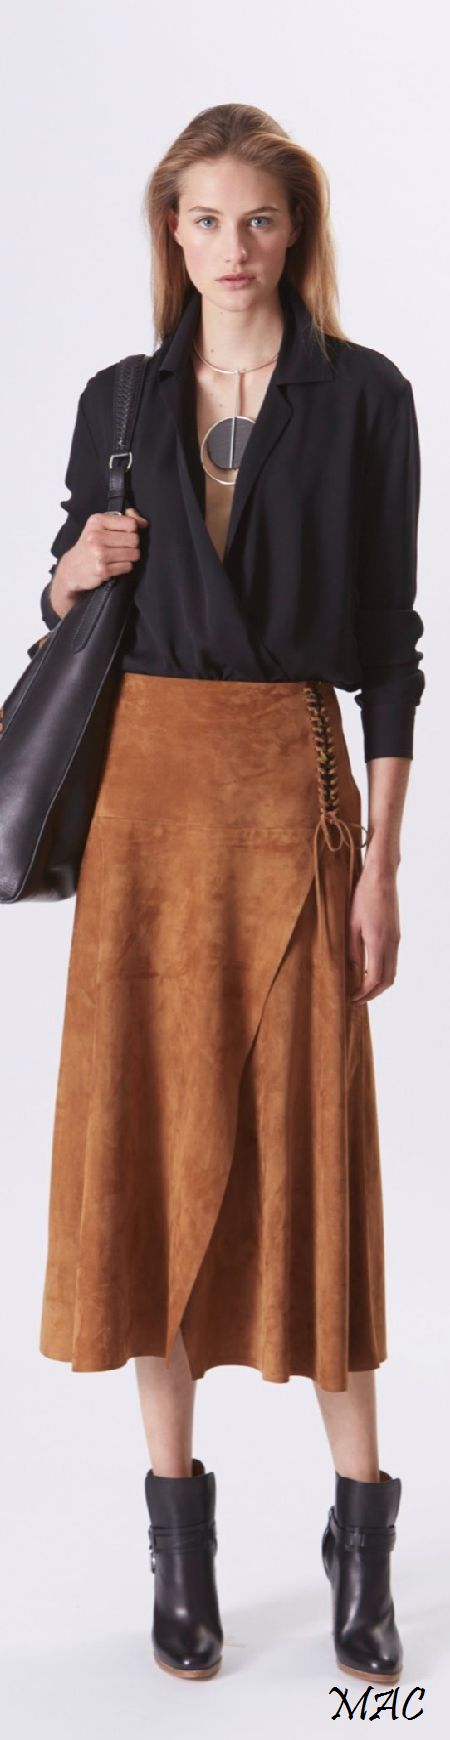 Resort 2016 Ralph Lauren JUST THE MOST GORGEOUS OUTFIT, OUI !! - THE SKIRT IS INCREDIBLE \u0026amp; THE COLOUR OF THE SUEDE, PERFECT!! ??